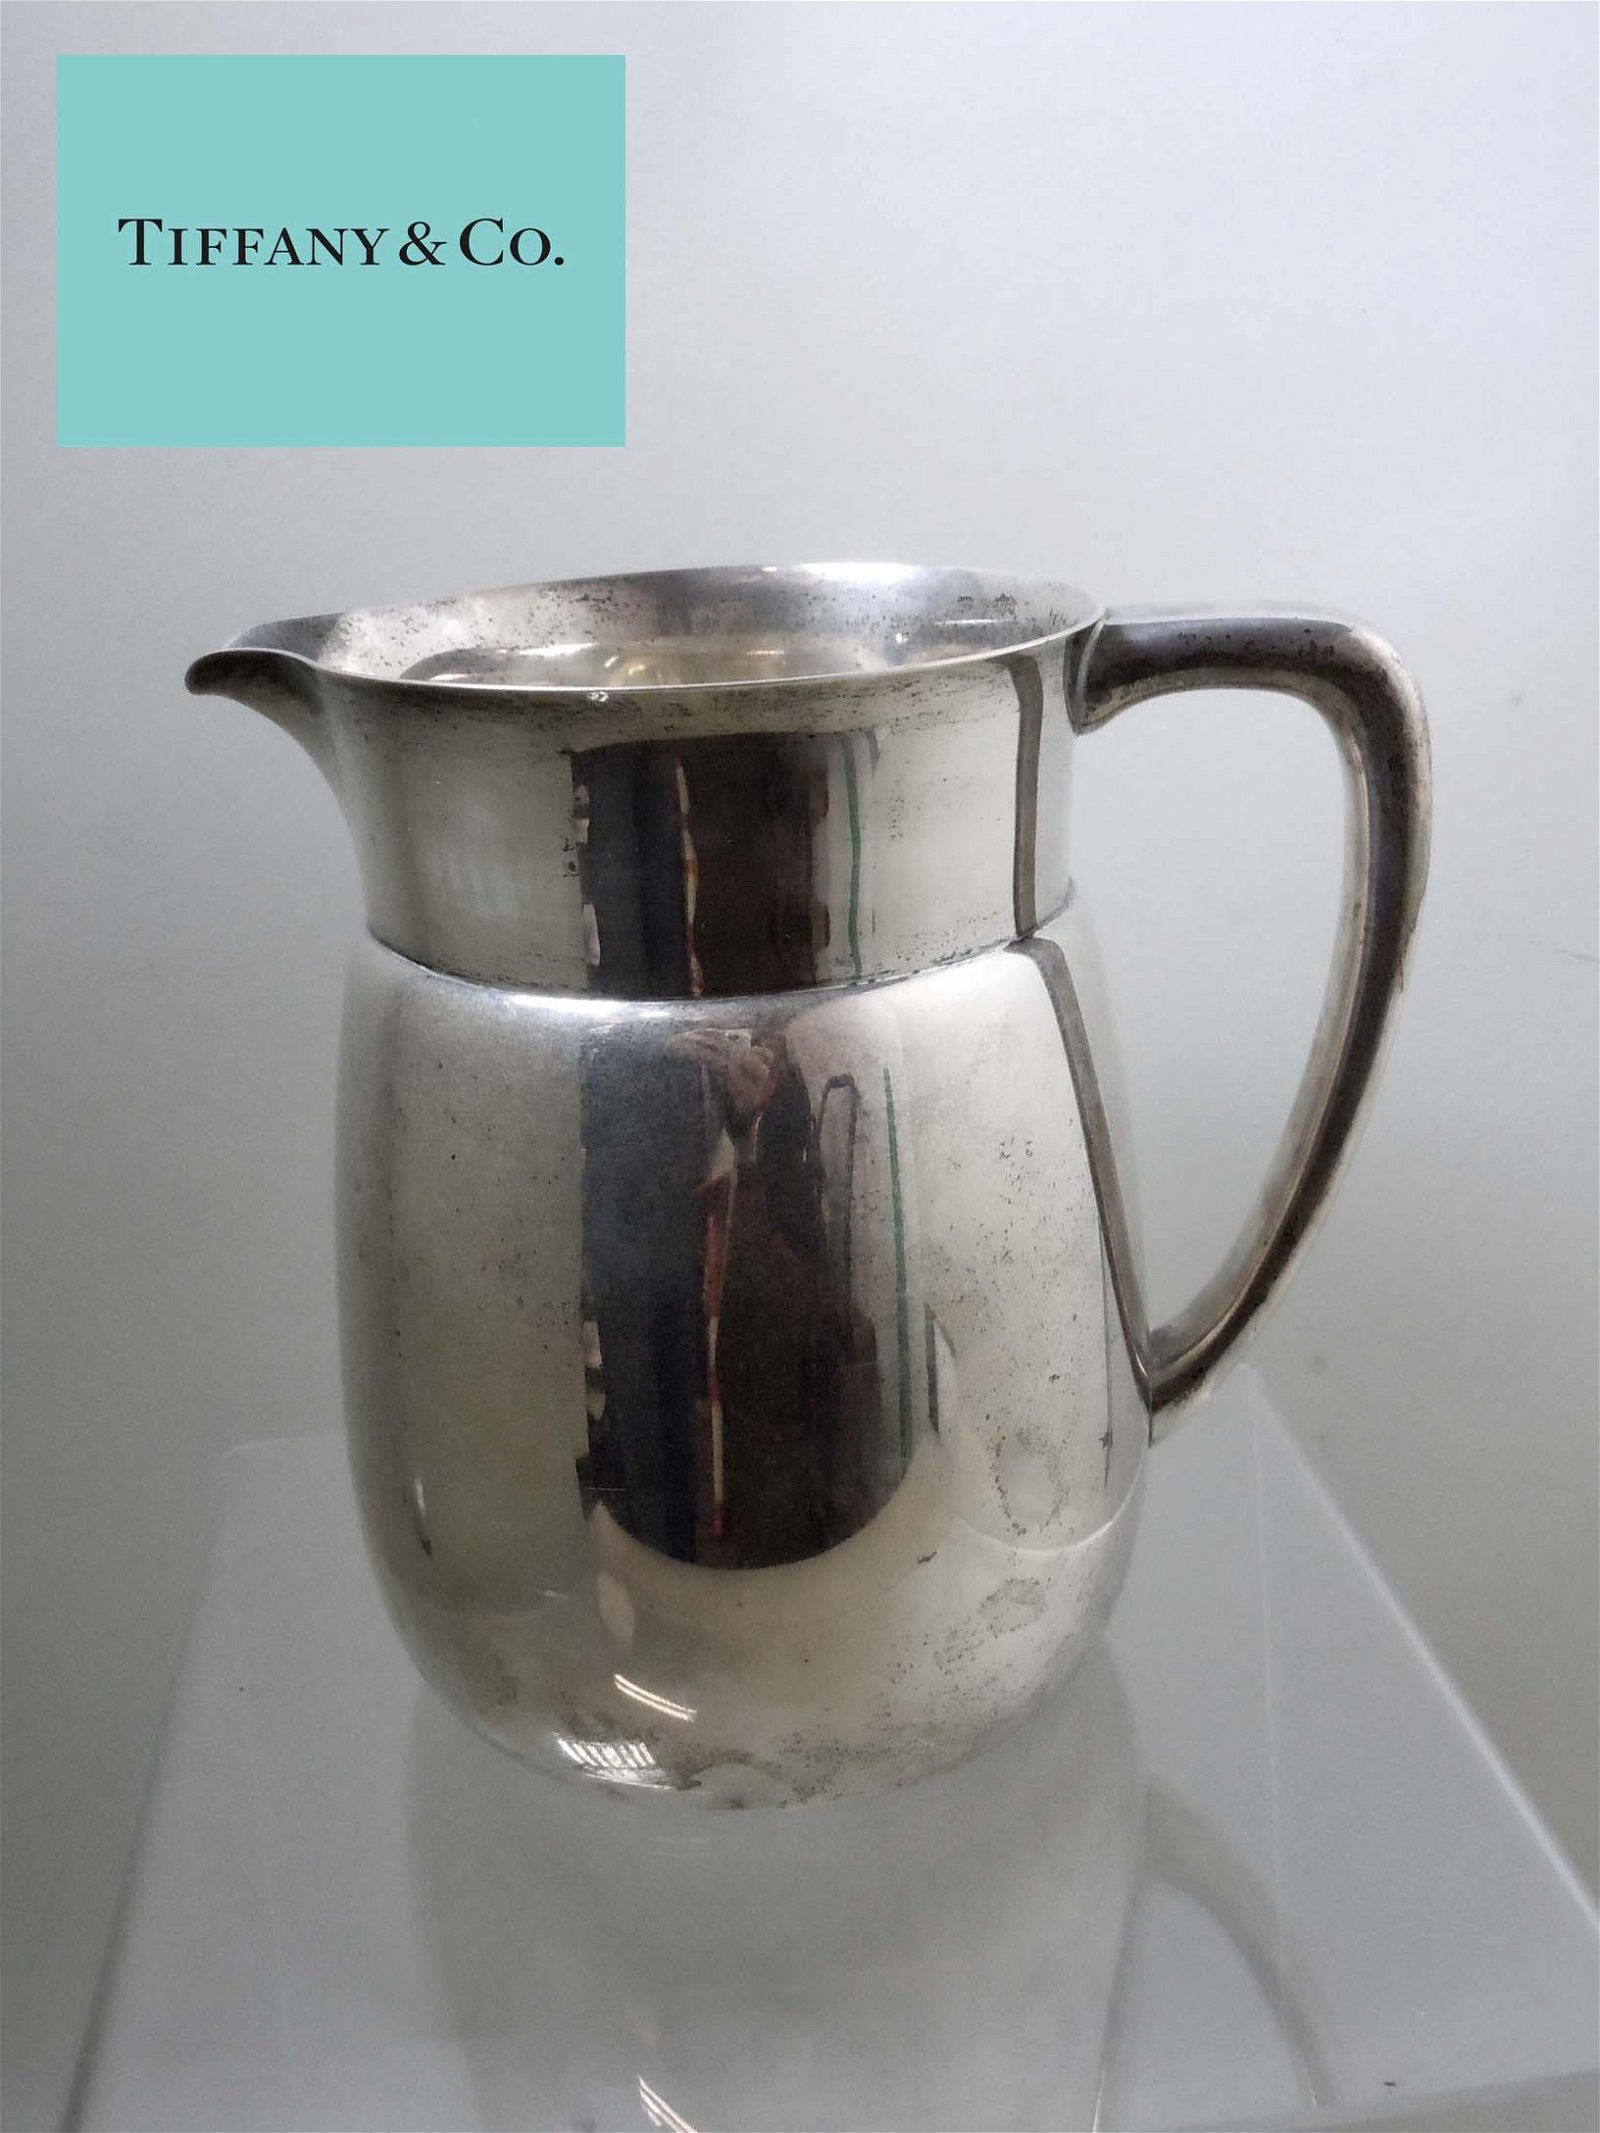 VINTAGE TIFFANY CO MAKERS STERLING SILVER WATER PITCHER